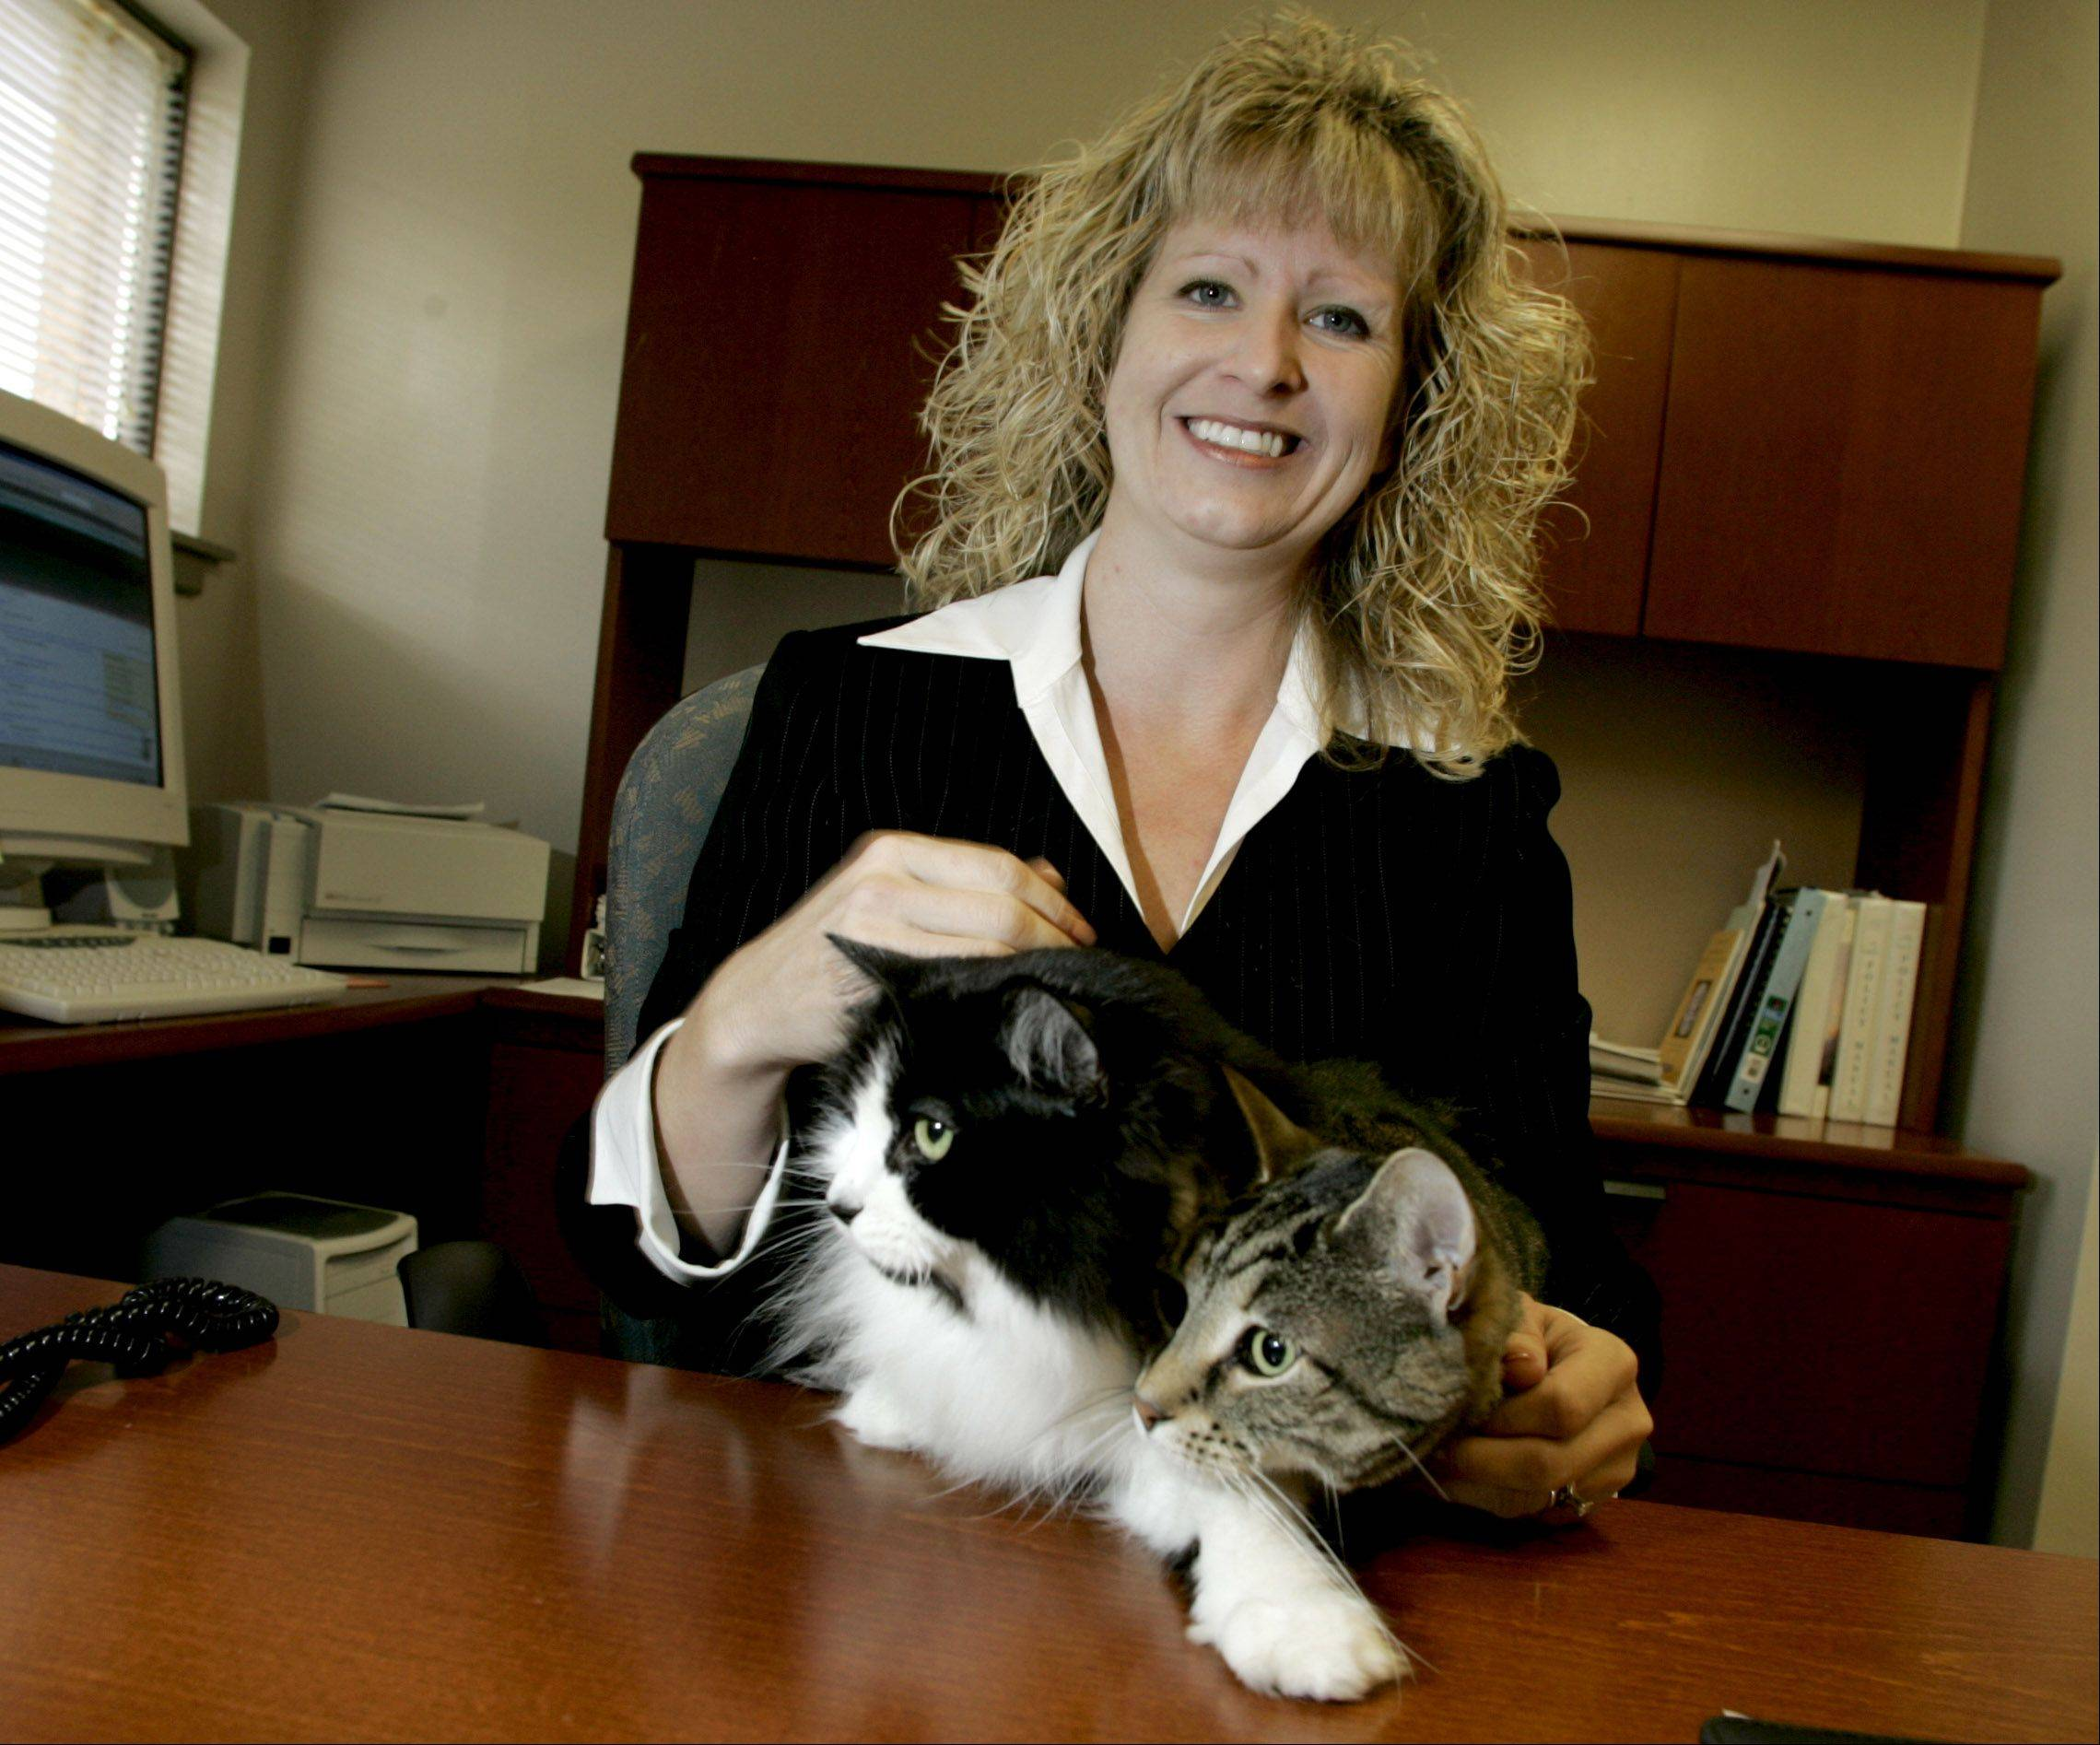 More than seven years after being brought in to help reform DuPage County Animal Care and Control, Kerry Vinkler has been fired from her job as executive director. Vinkler says she was wrongfully terminated.